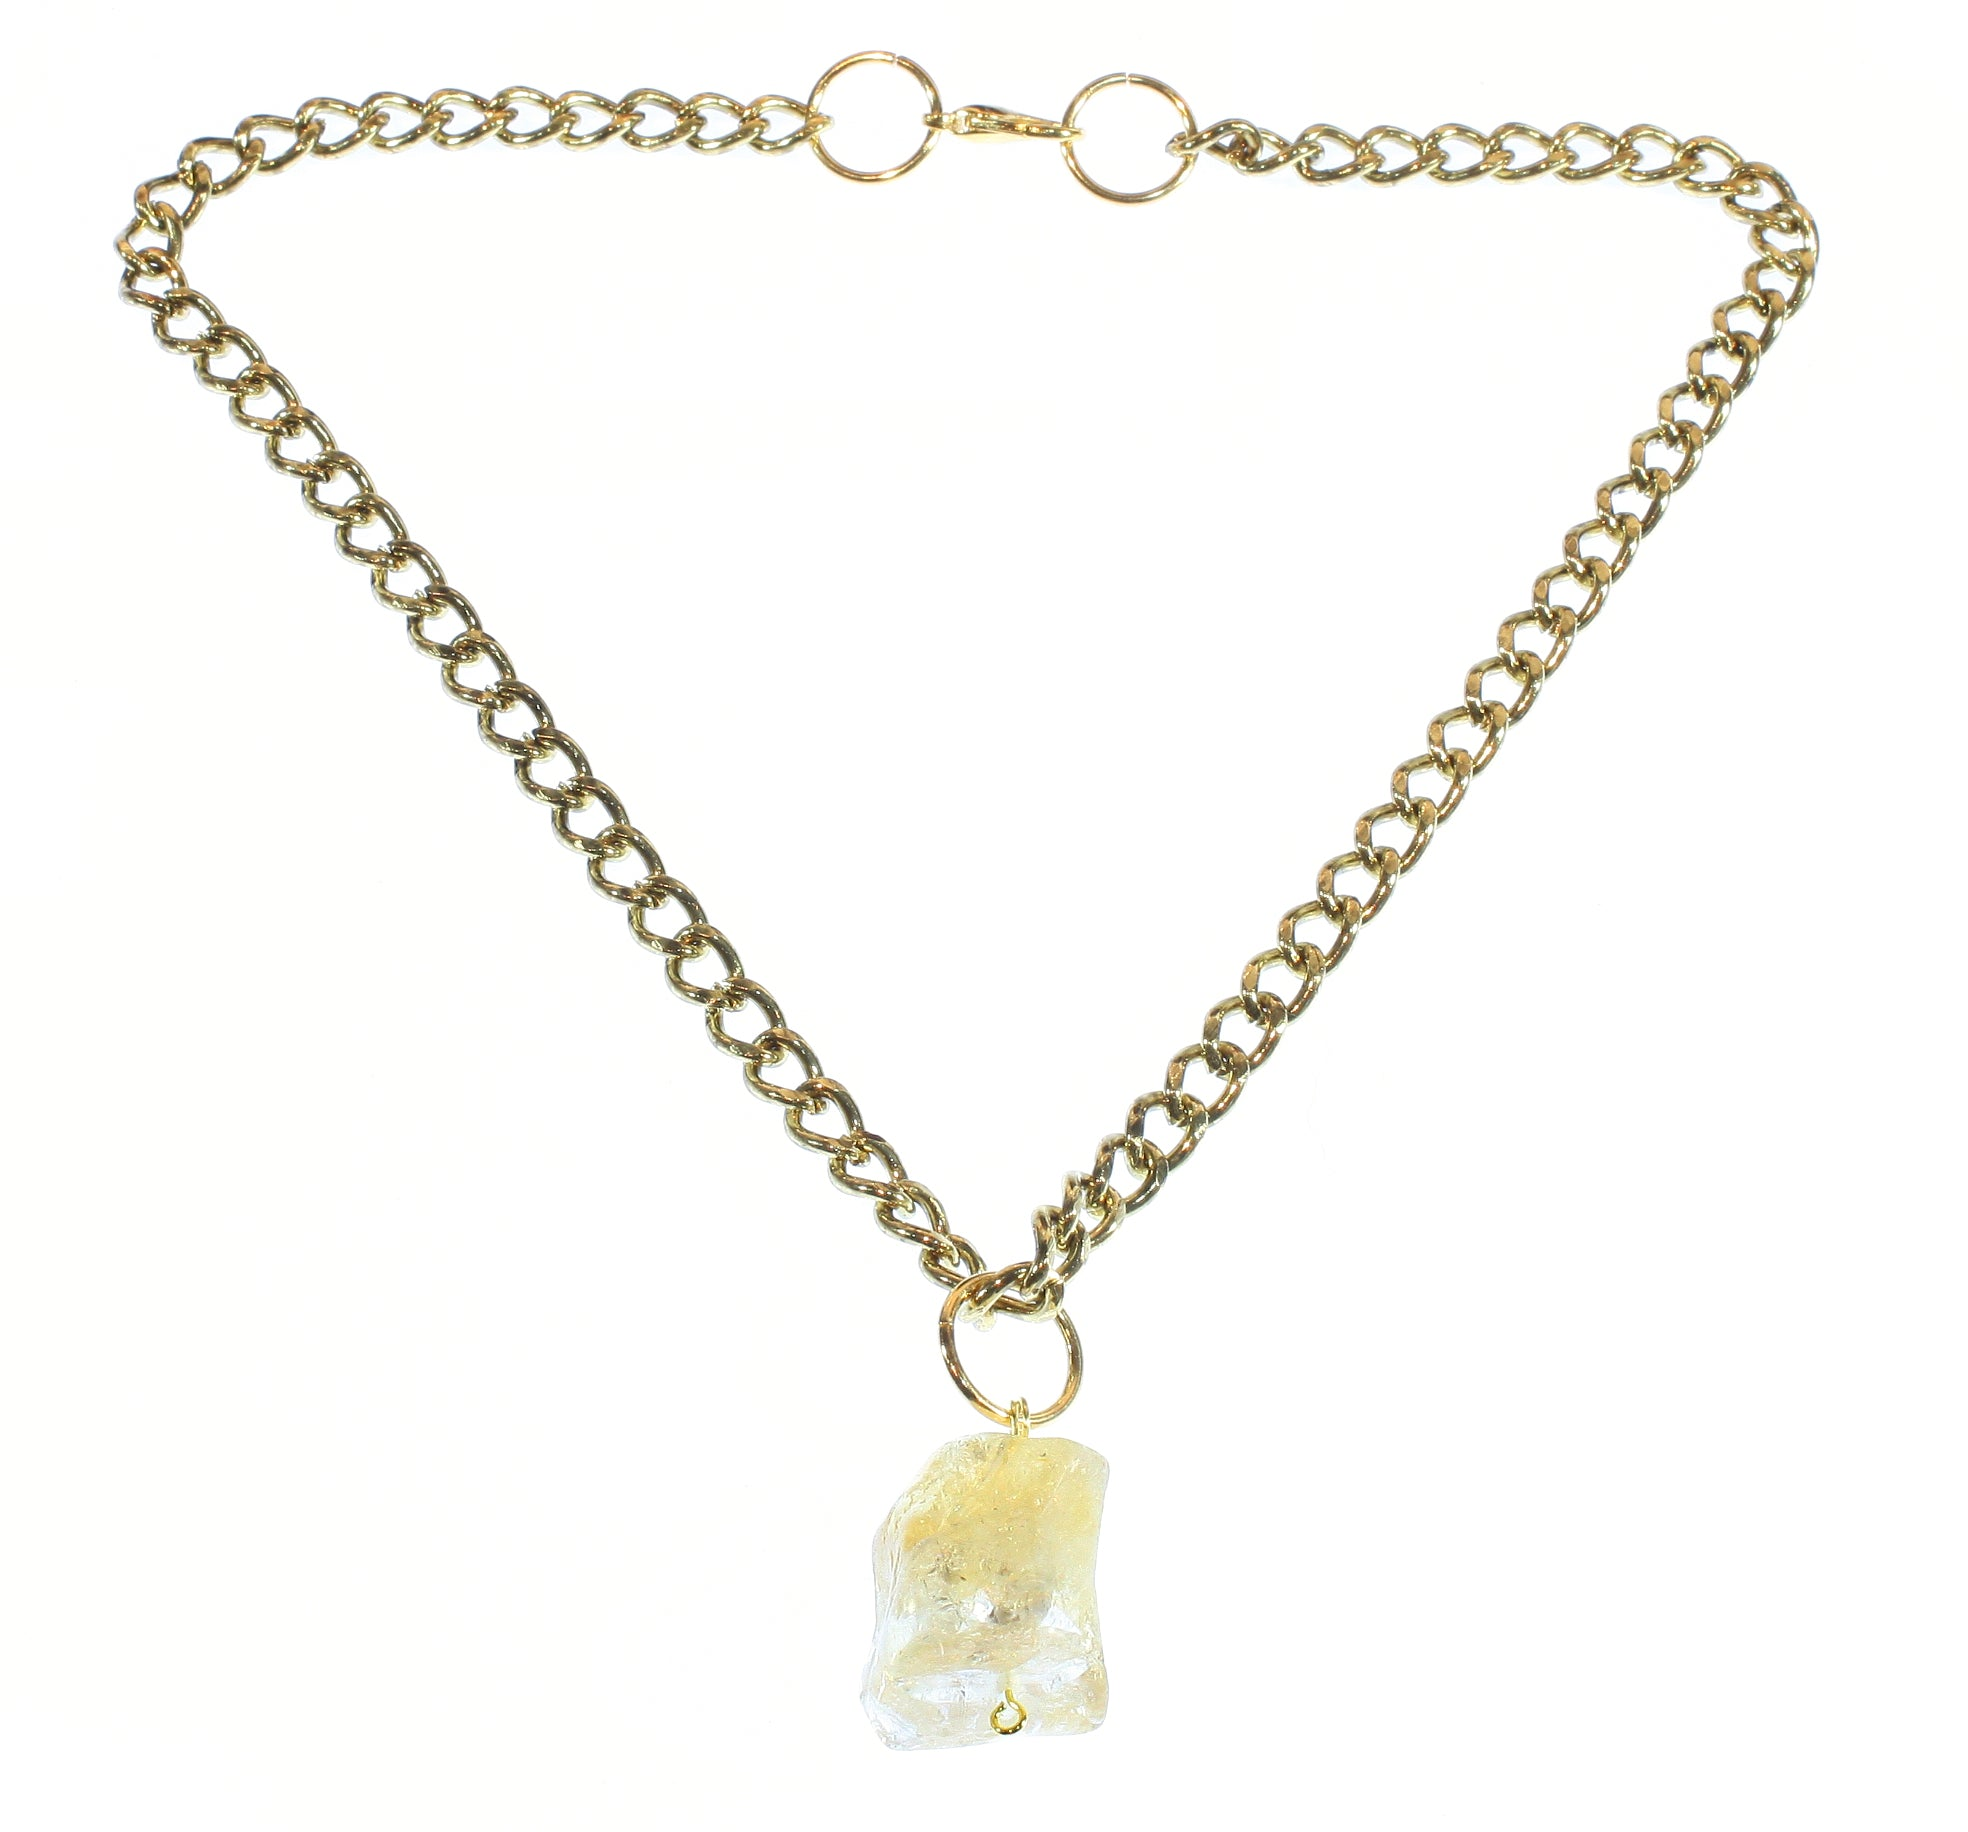 """Tumbled Quartz"" Large Quartz Nugget on Chunky Goldtone Chain, 20 Inches"